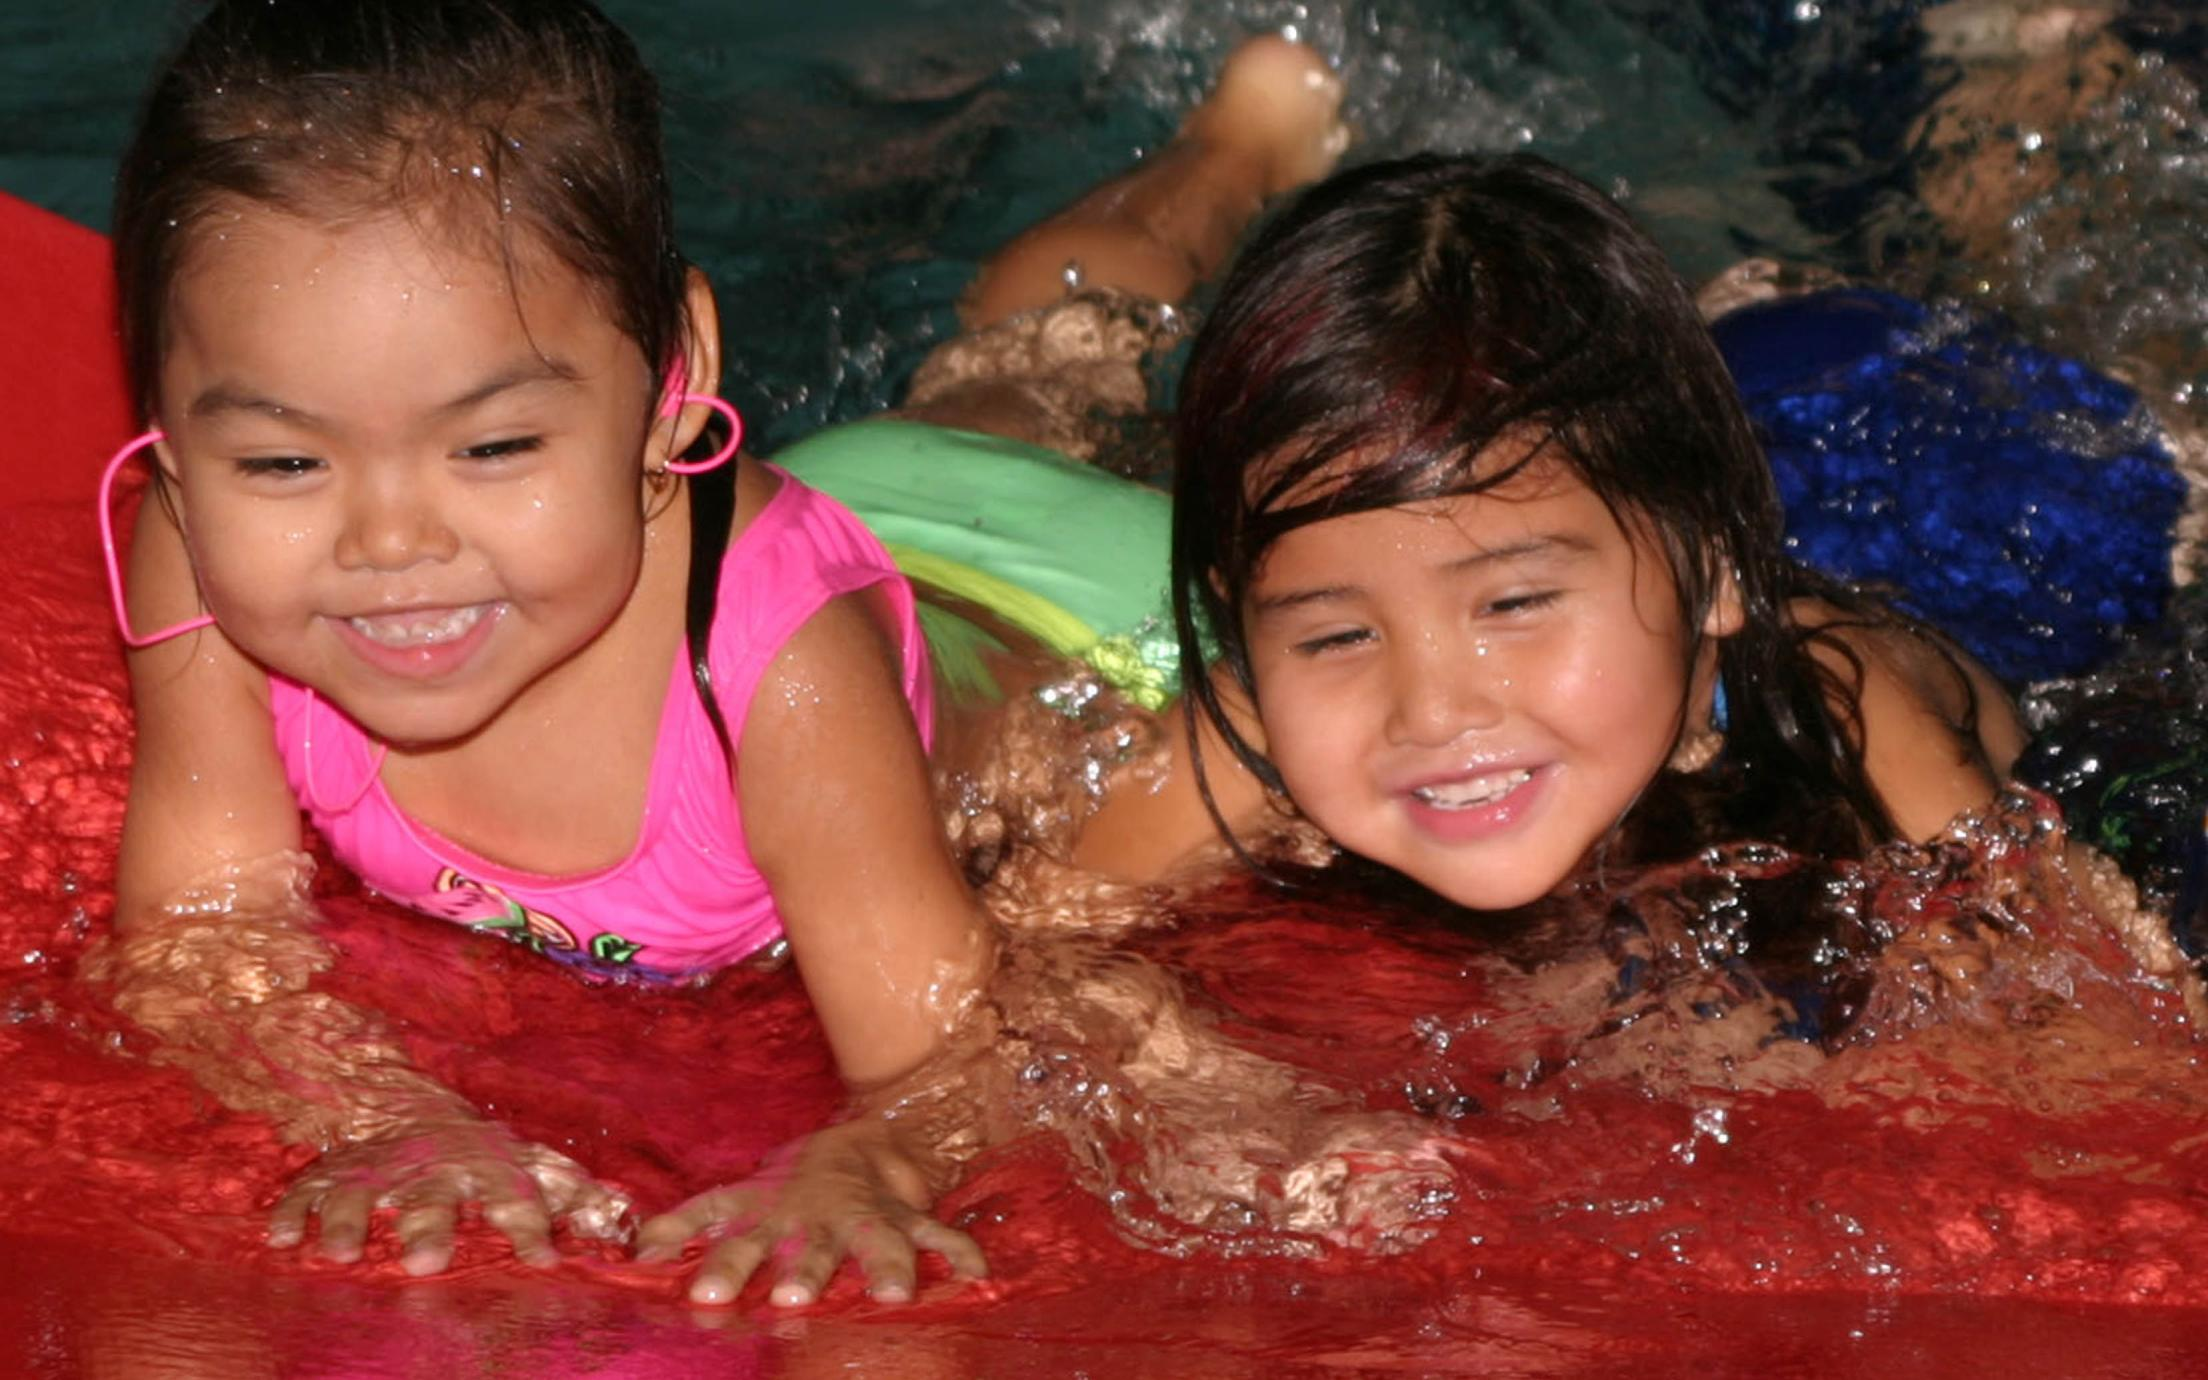 A Child and Youth Care First Nations Worker taking care of two little girls who are having fun at the pool